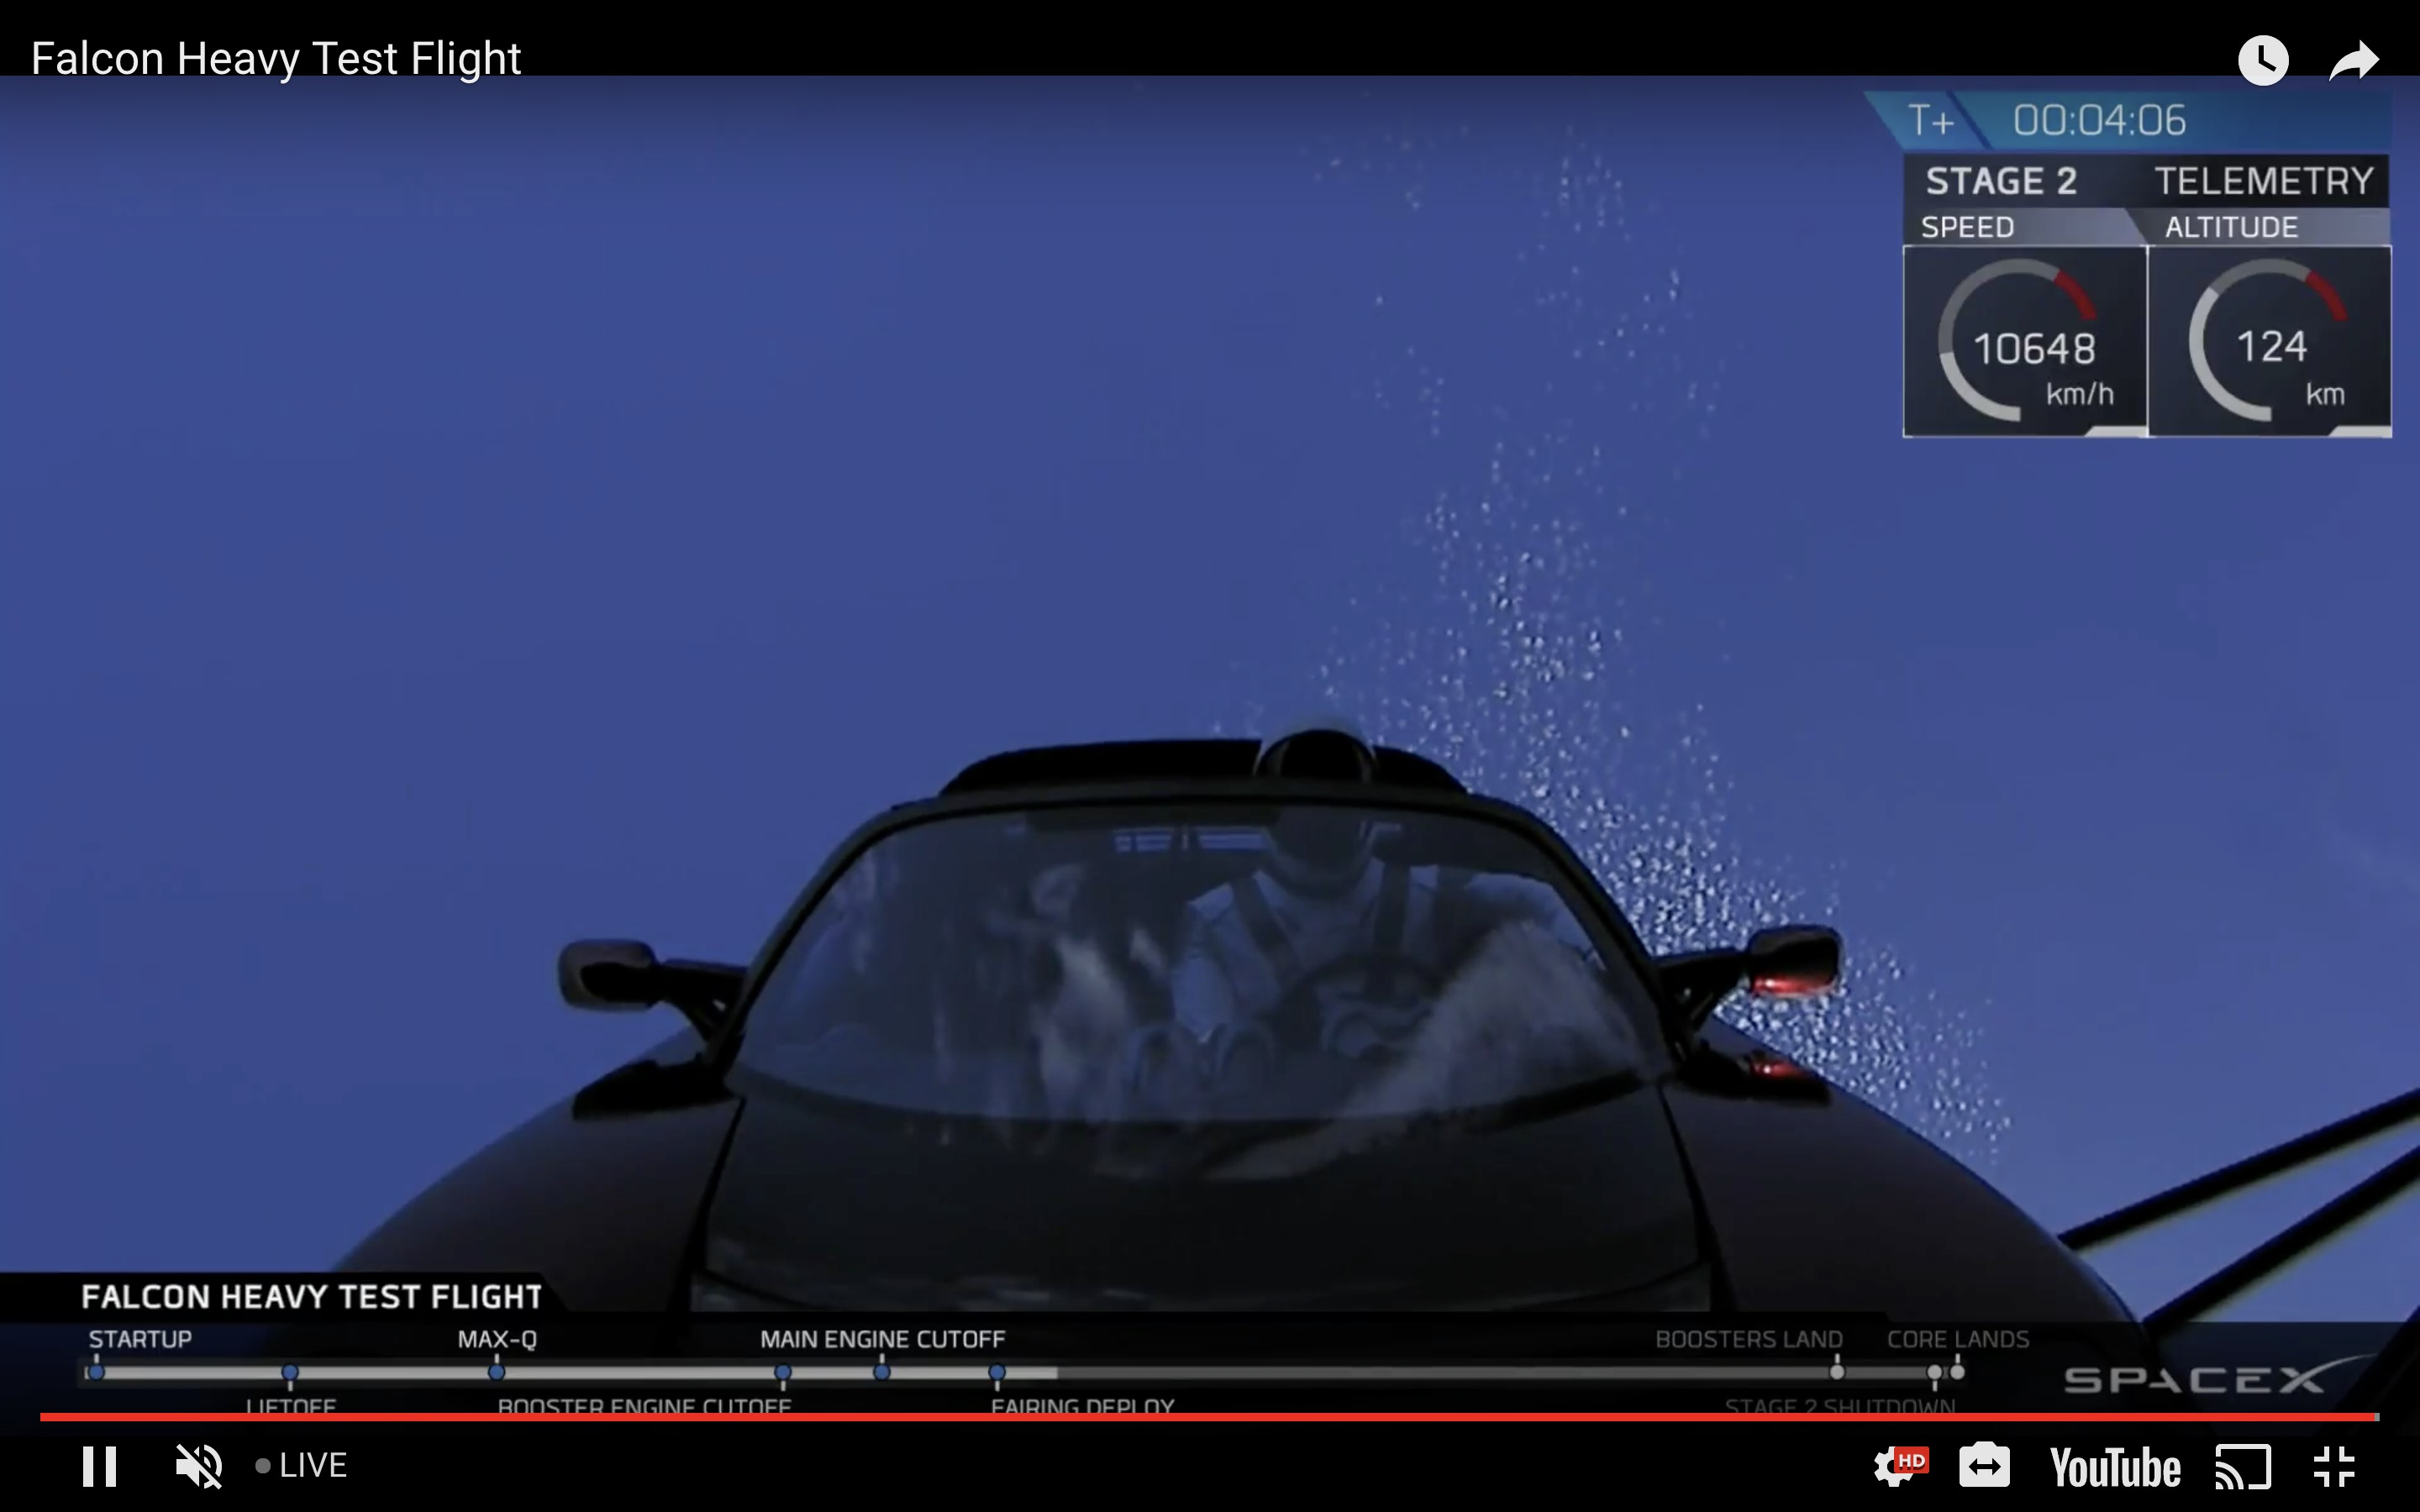 Tesla Roadster successfully launched into space on SpaceX's